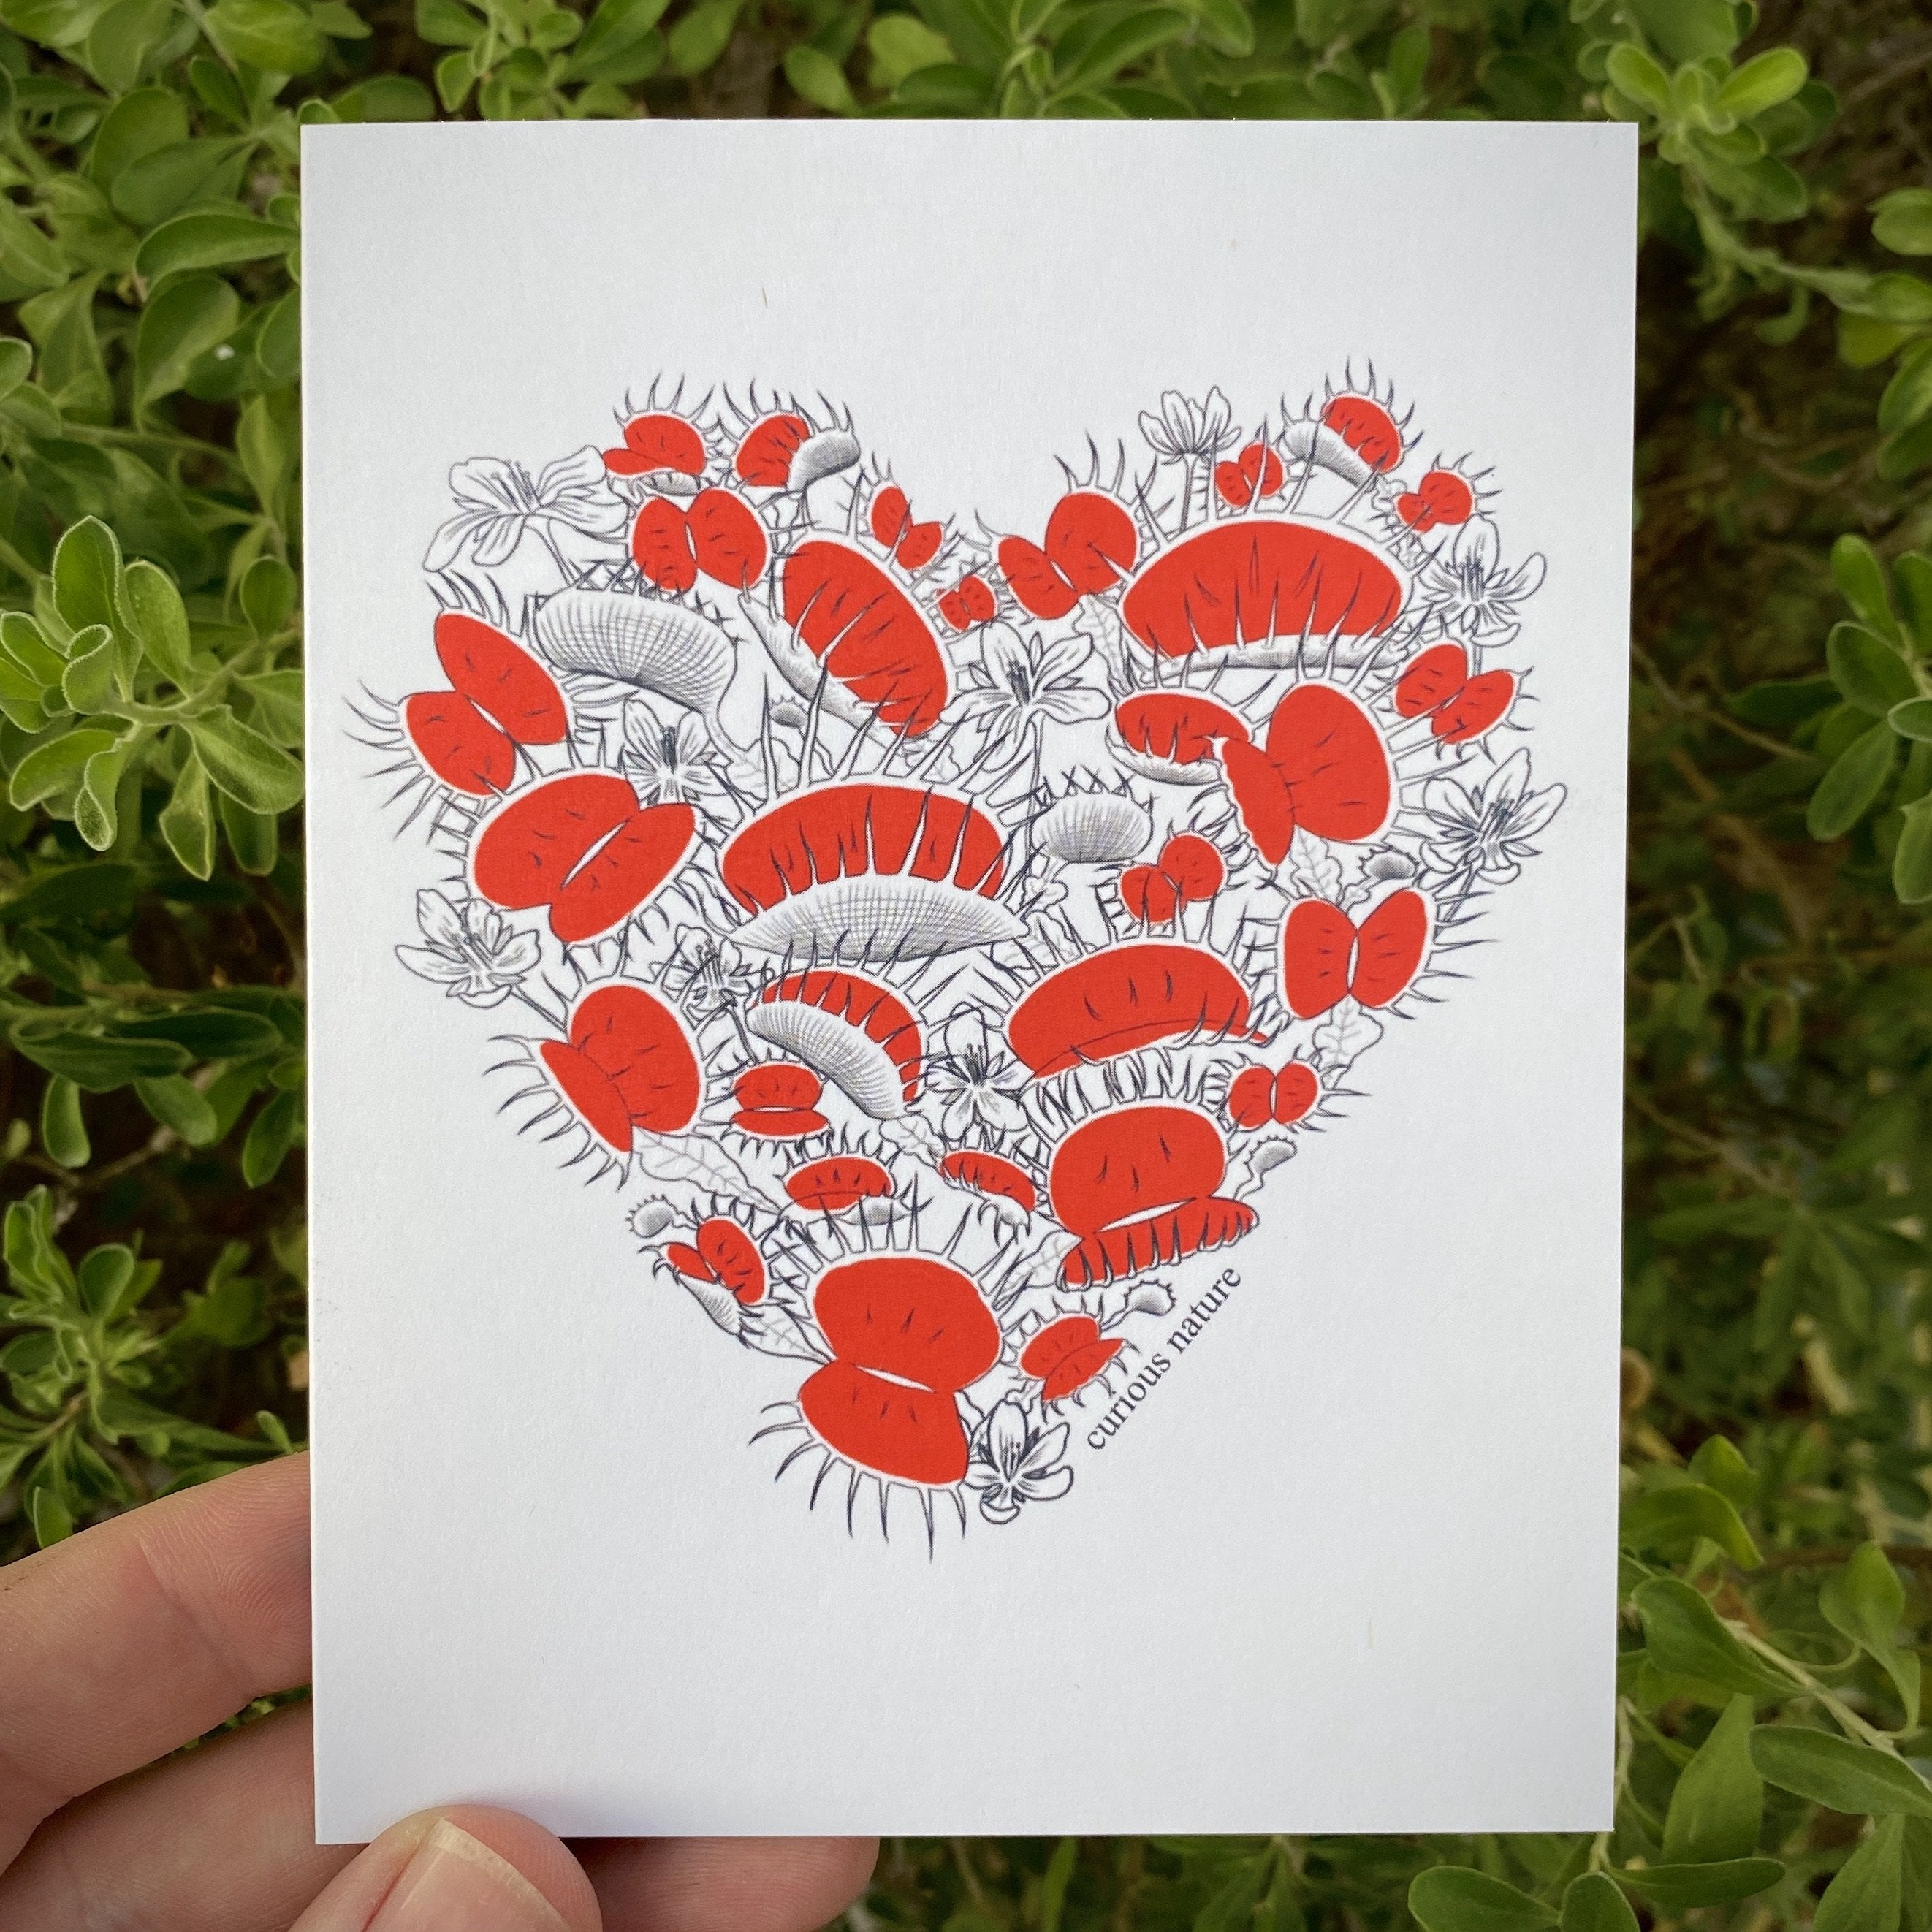 Venus Flytrap Heart Greeting Card - Curious Nature